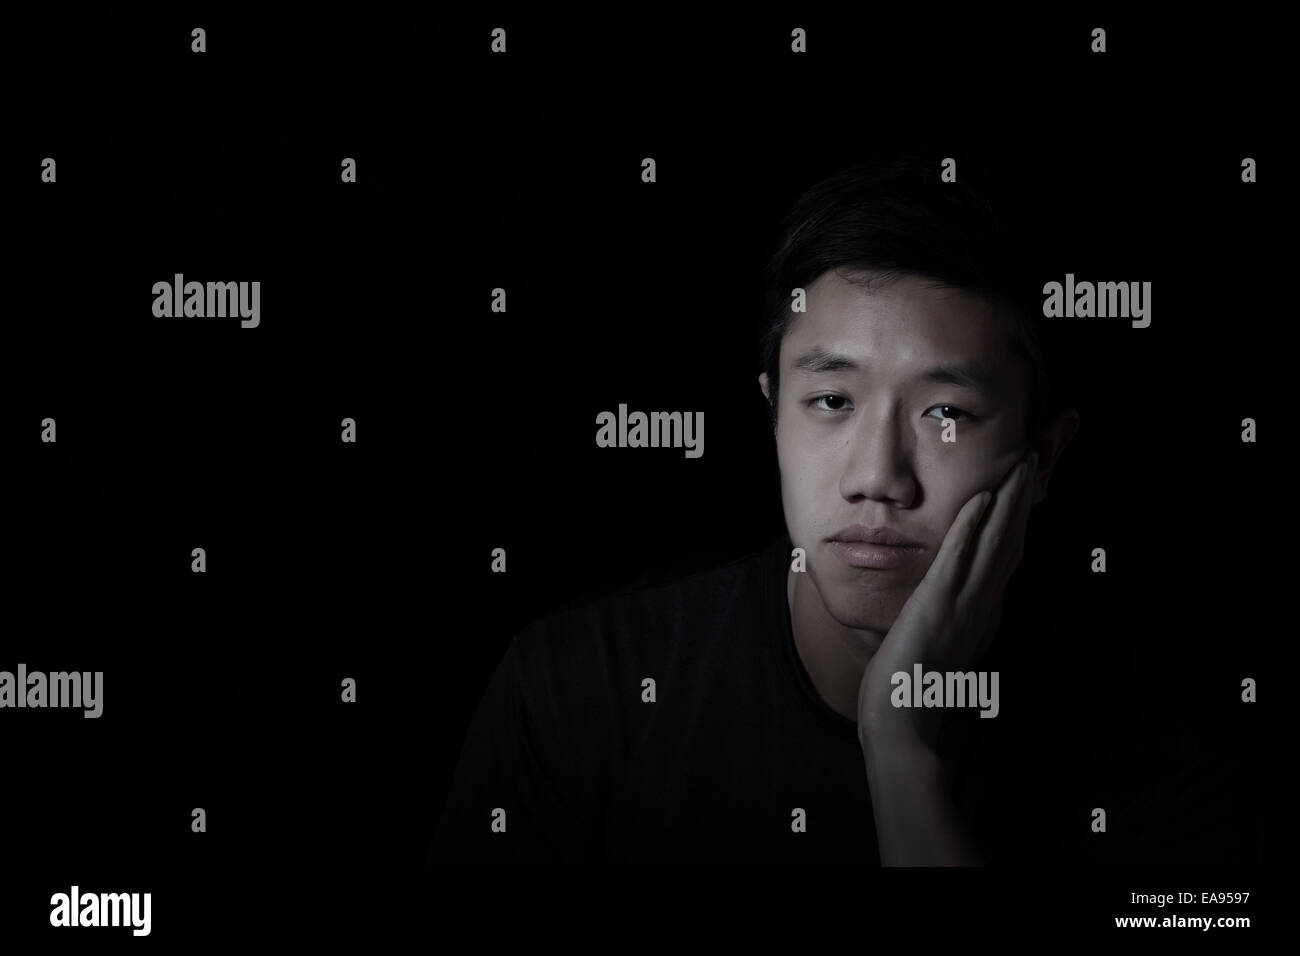 Young man, looking forward, showing depression with black background - Stock Image